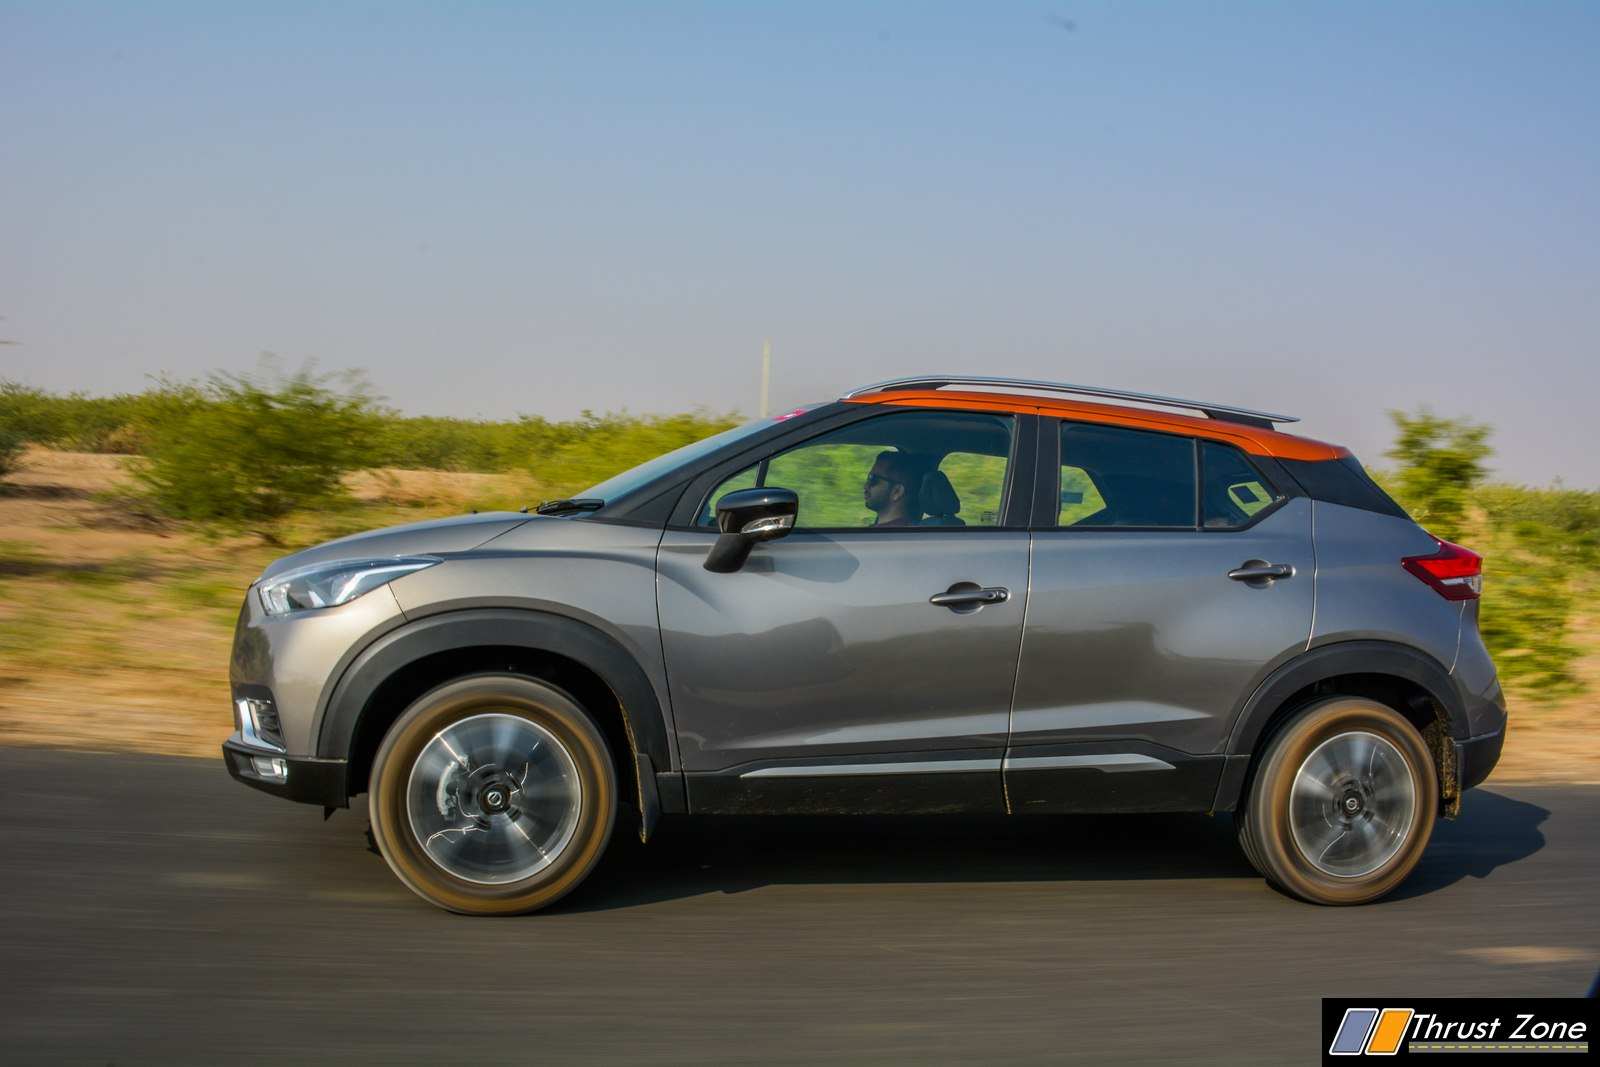 Nissan-Kicks-India-Review-Diese-2019l-40